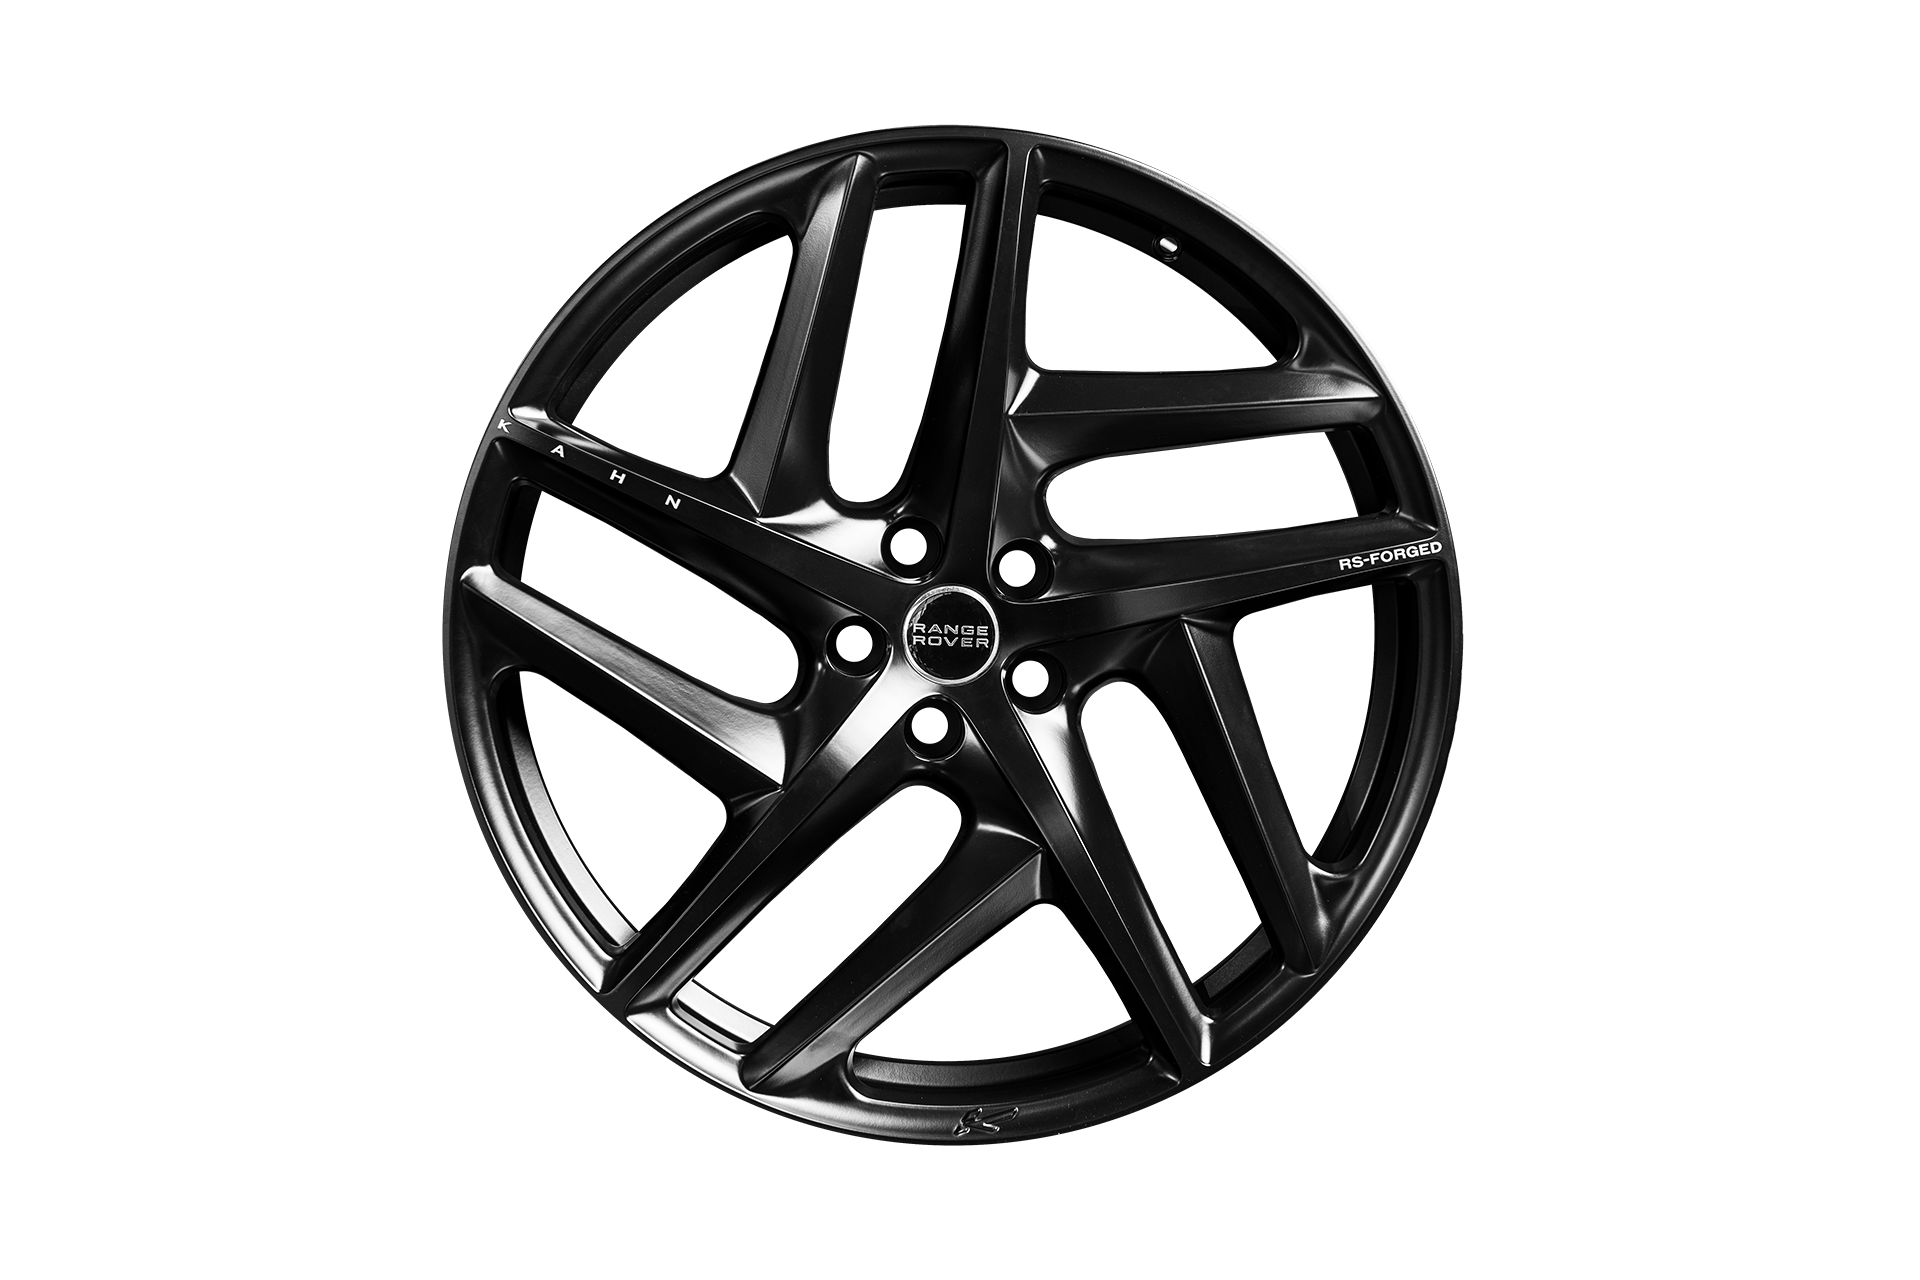 Range Rover Sport (2013-2018) Type 52 RS-Forged Alloy Wheels - Project Kahn